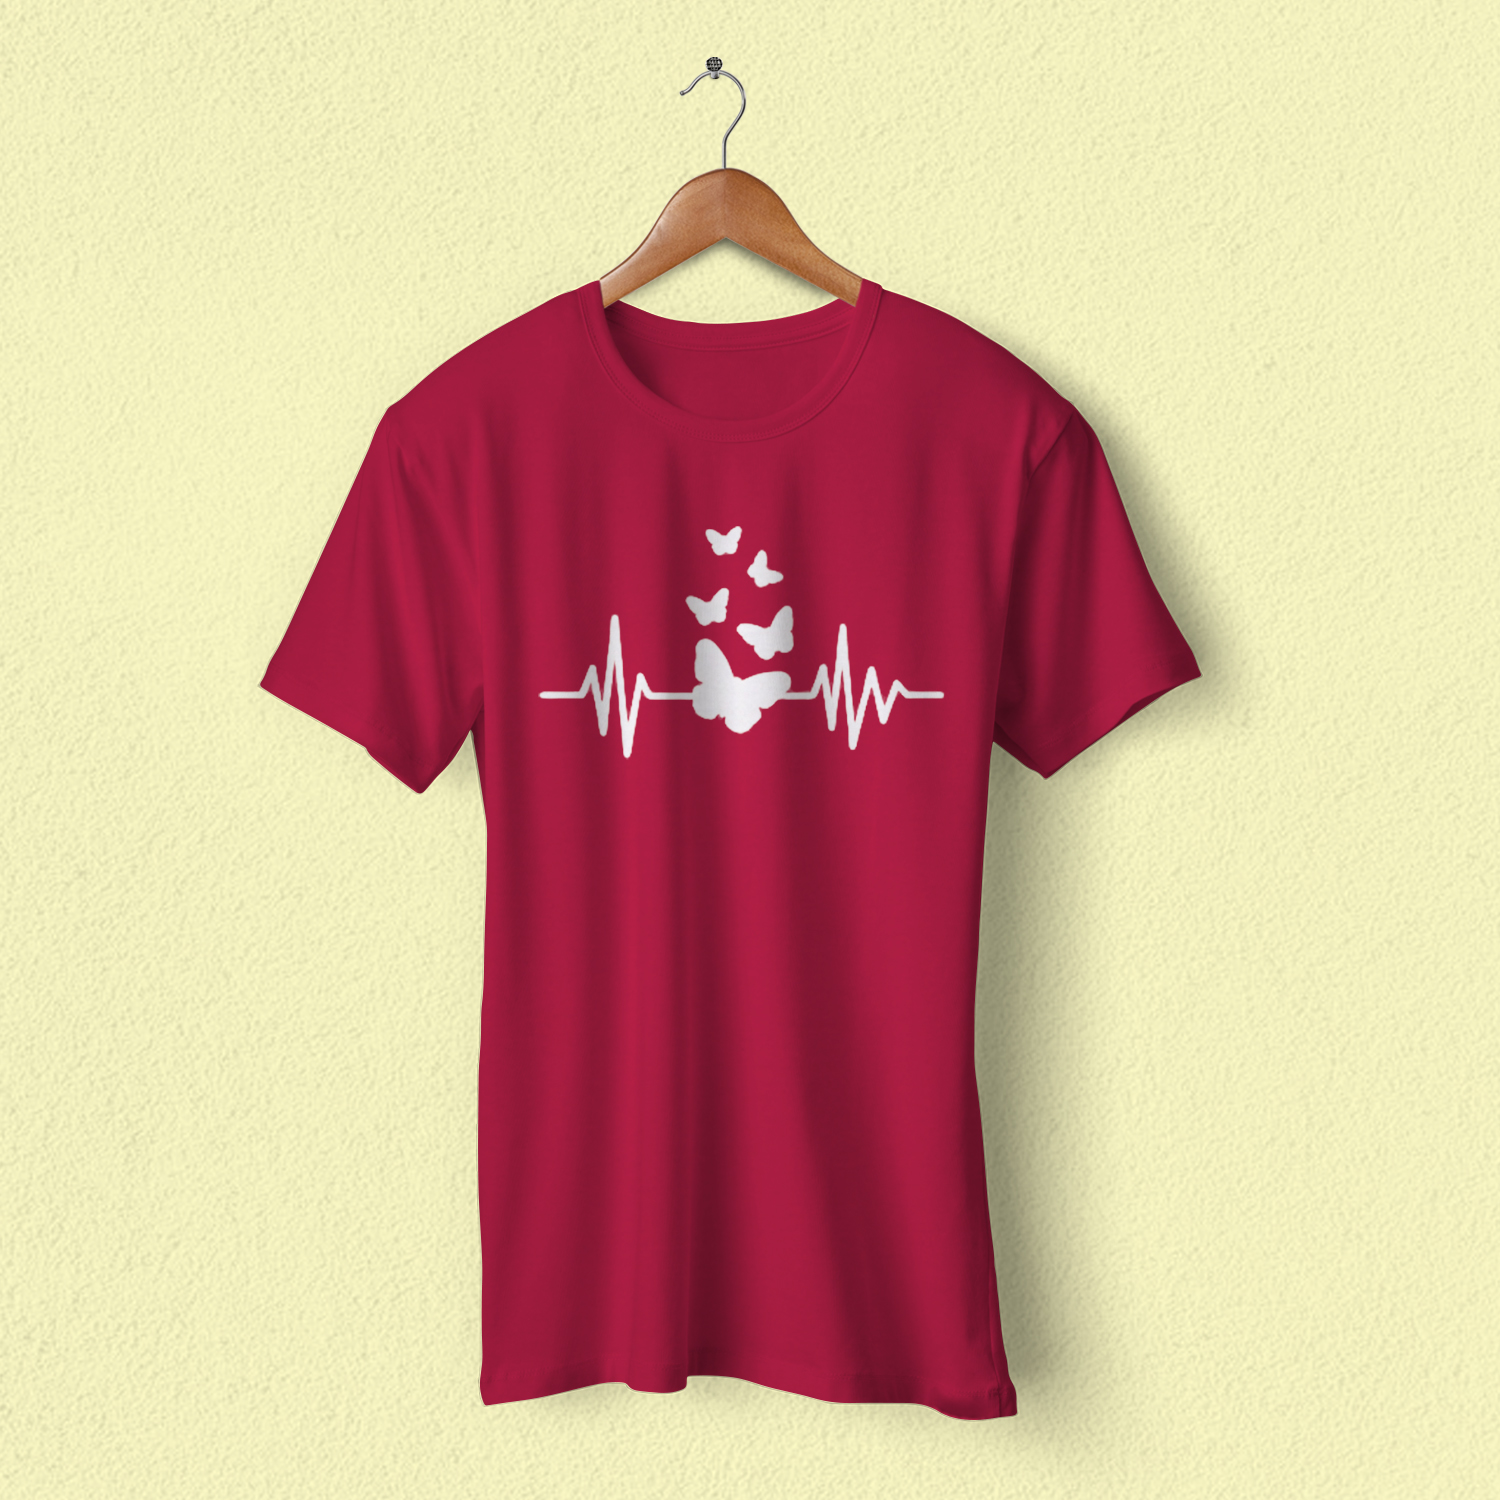 Hearts Printed Round Neck Half Sleeves Best Quality For Casual & Night Wear Multi Color Cotton T Shirt For Ladies Women & Girls